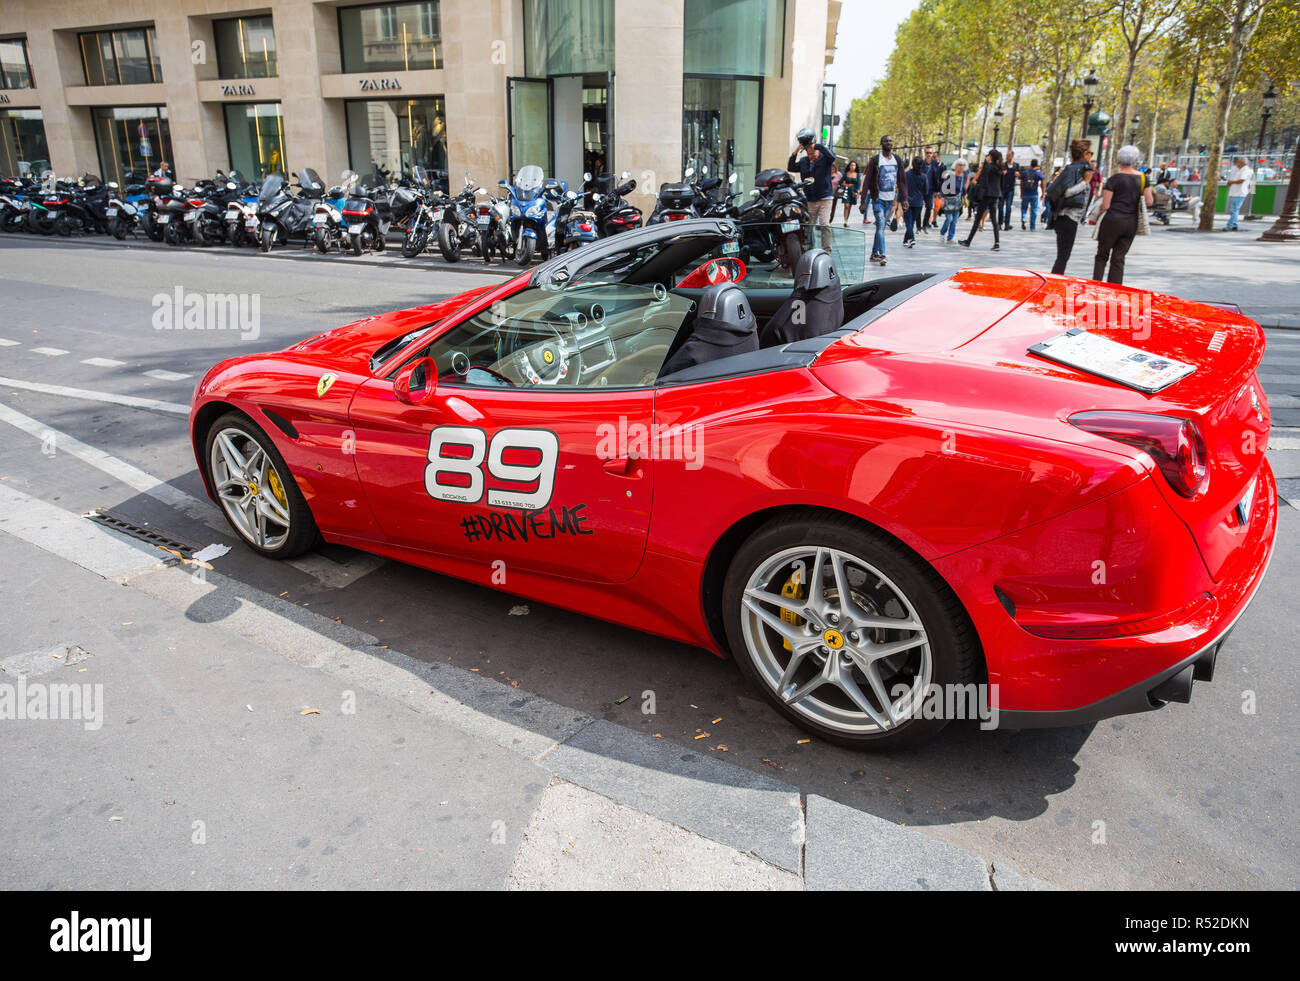 PARIS, FRANCE, SEPTEMBER 5, 2018 - Ferrari California luxury coupe sports car rental along the Champs-Elysee. Travel and tourism. - Stock Image